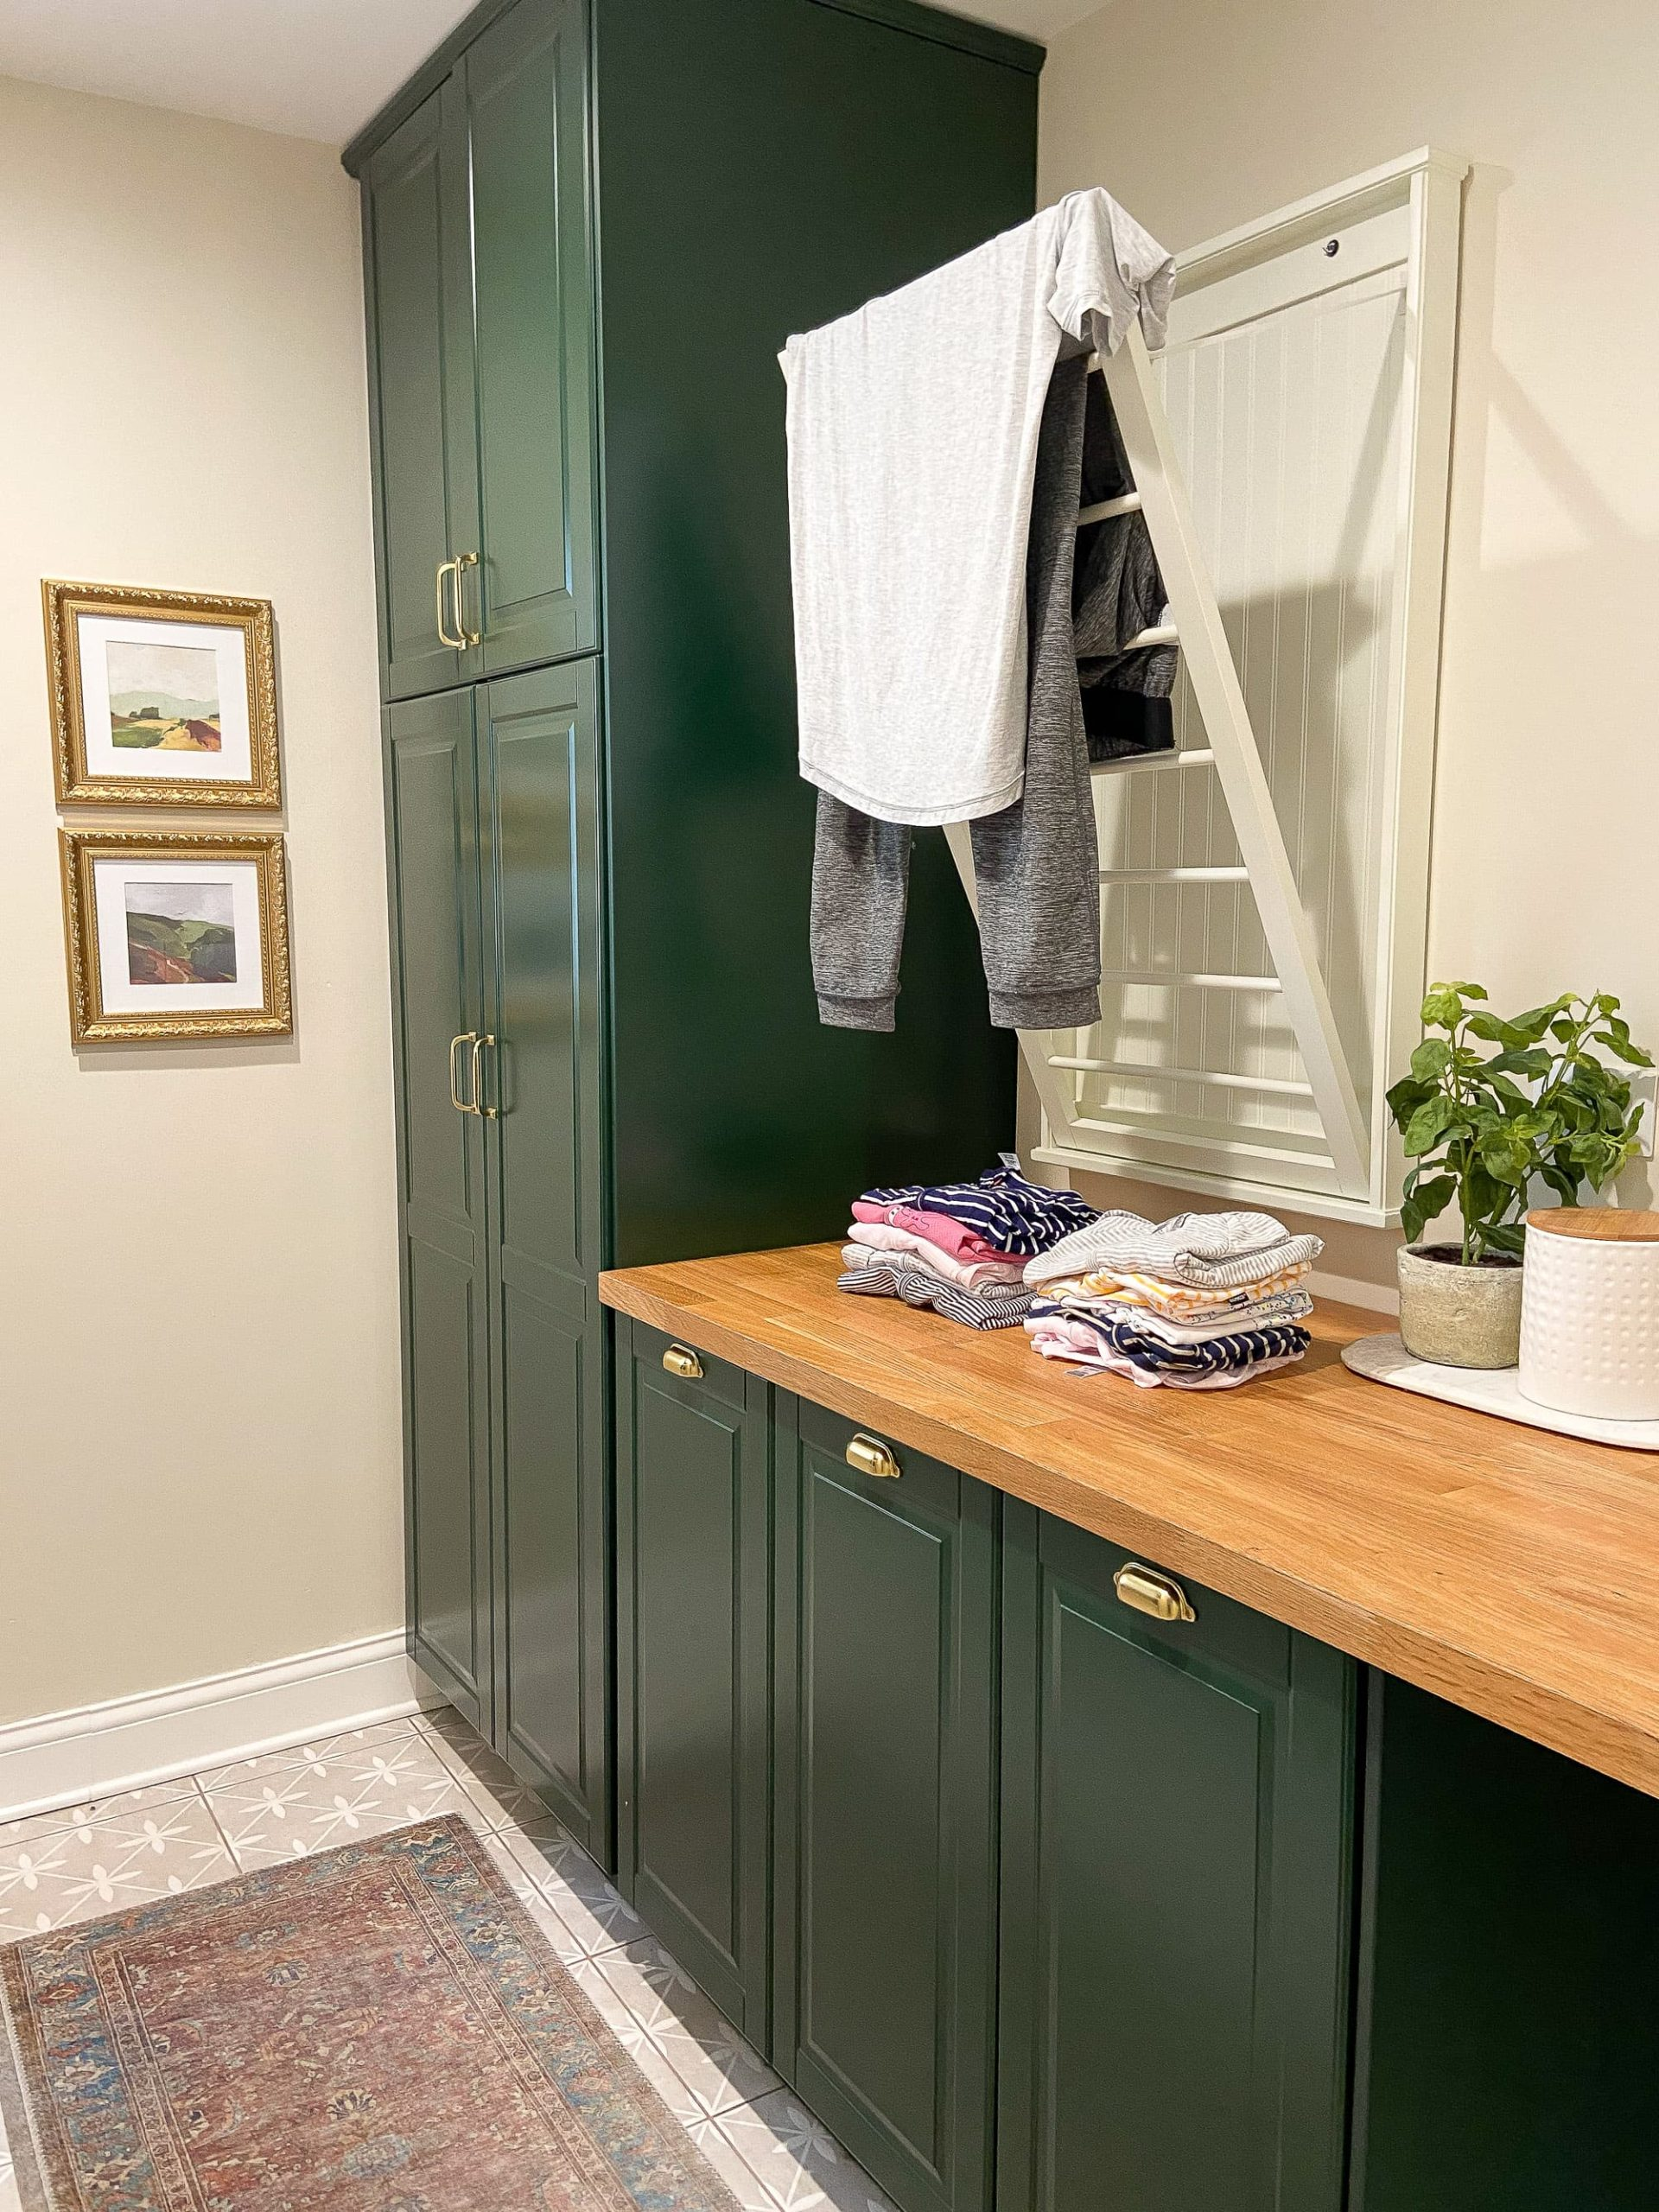 Fold laundry in the laundry room